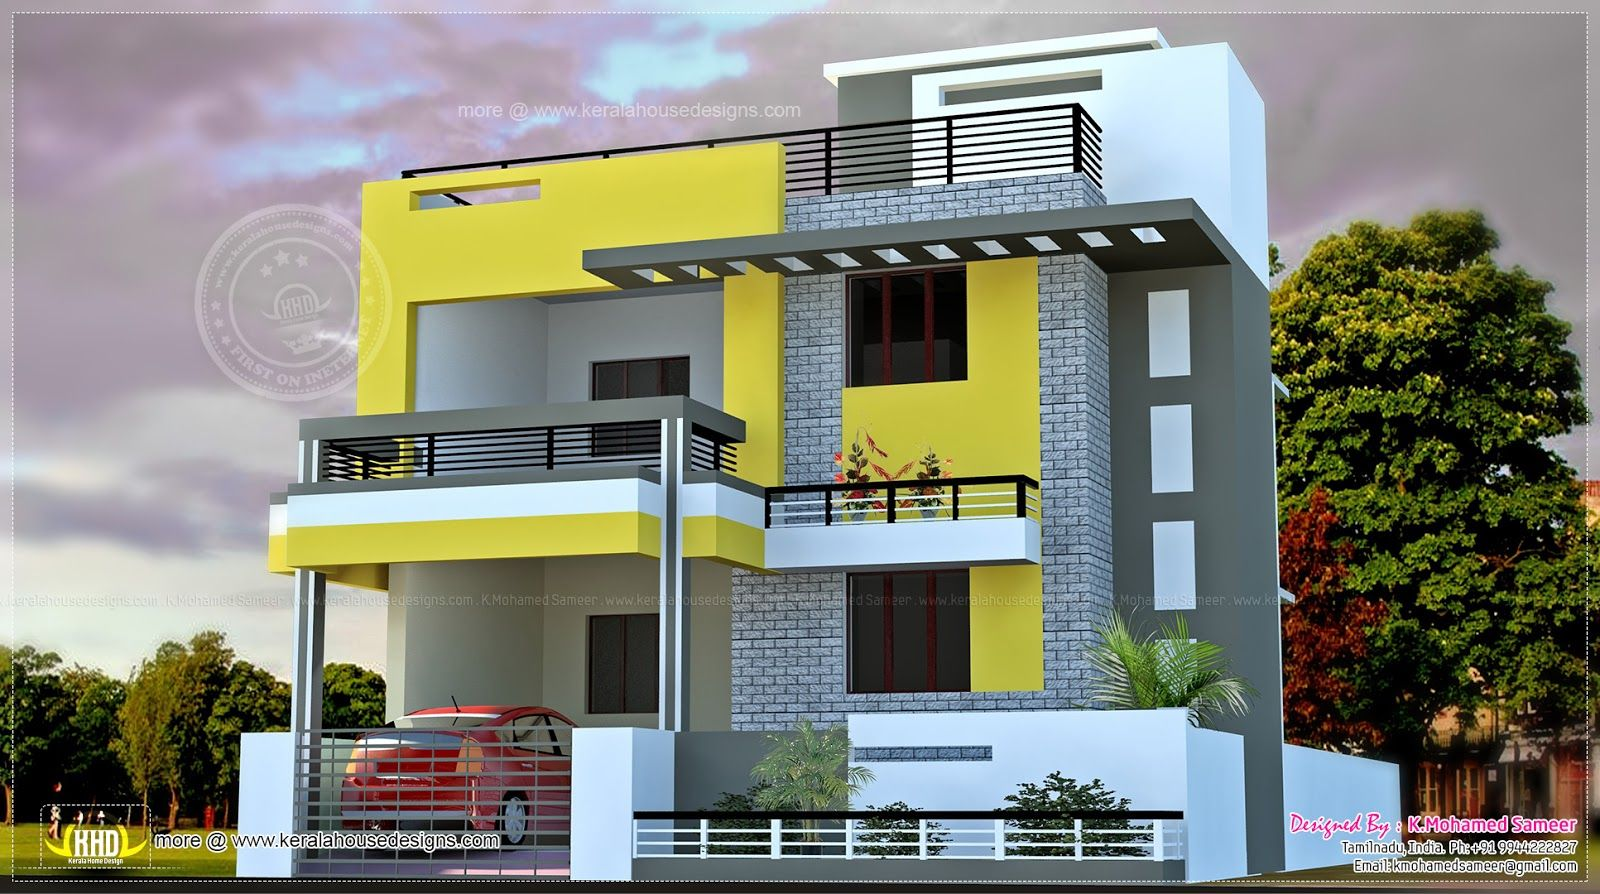 Elevations of residential buildings in indian photo for Small house design in jammu